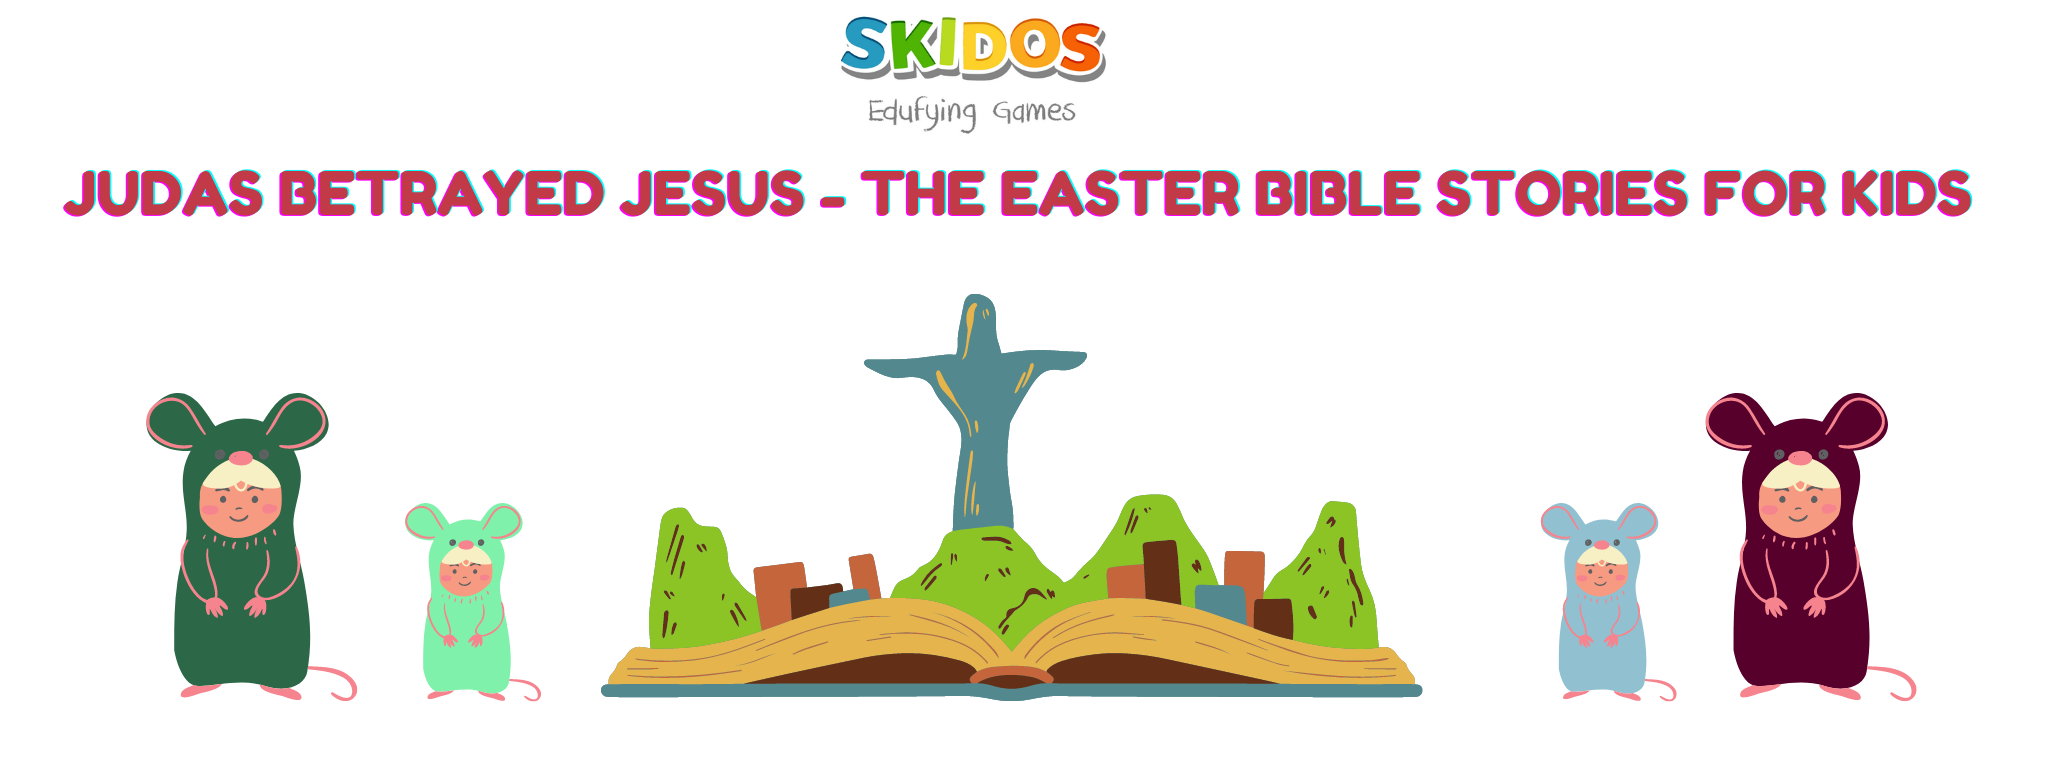 The Easter Bible Stories for Kids Judas betrayed Jesus